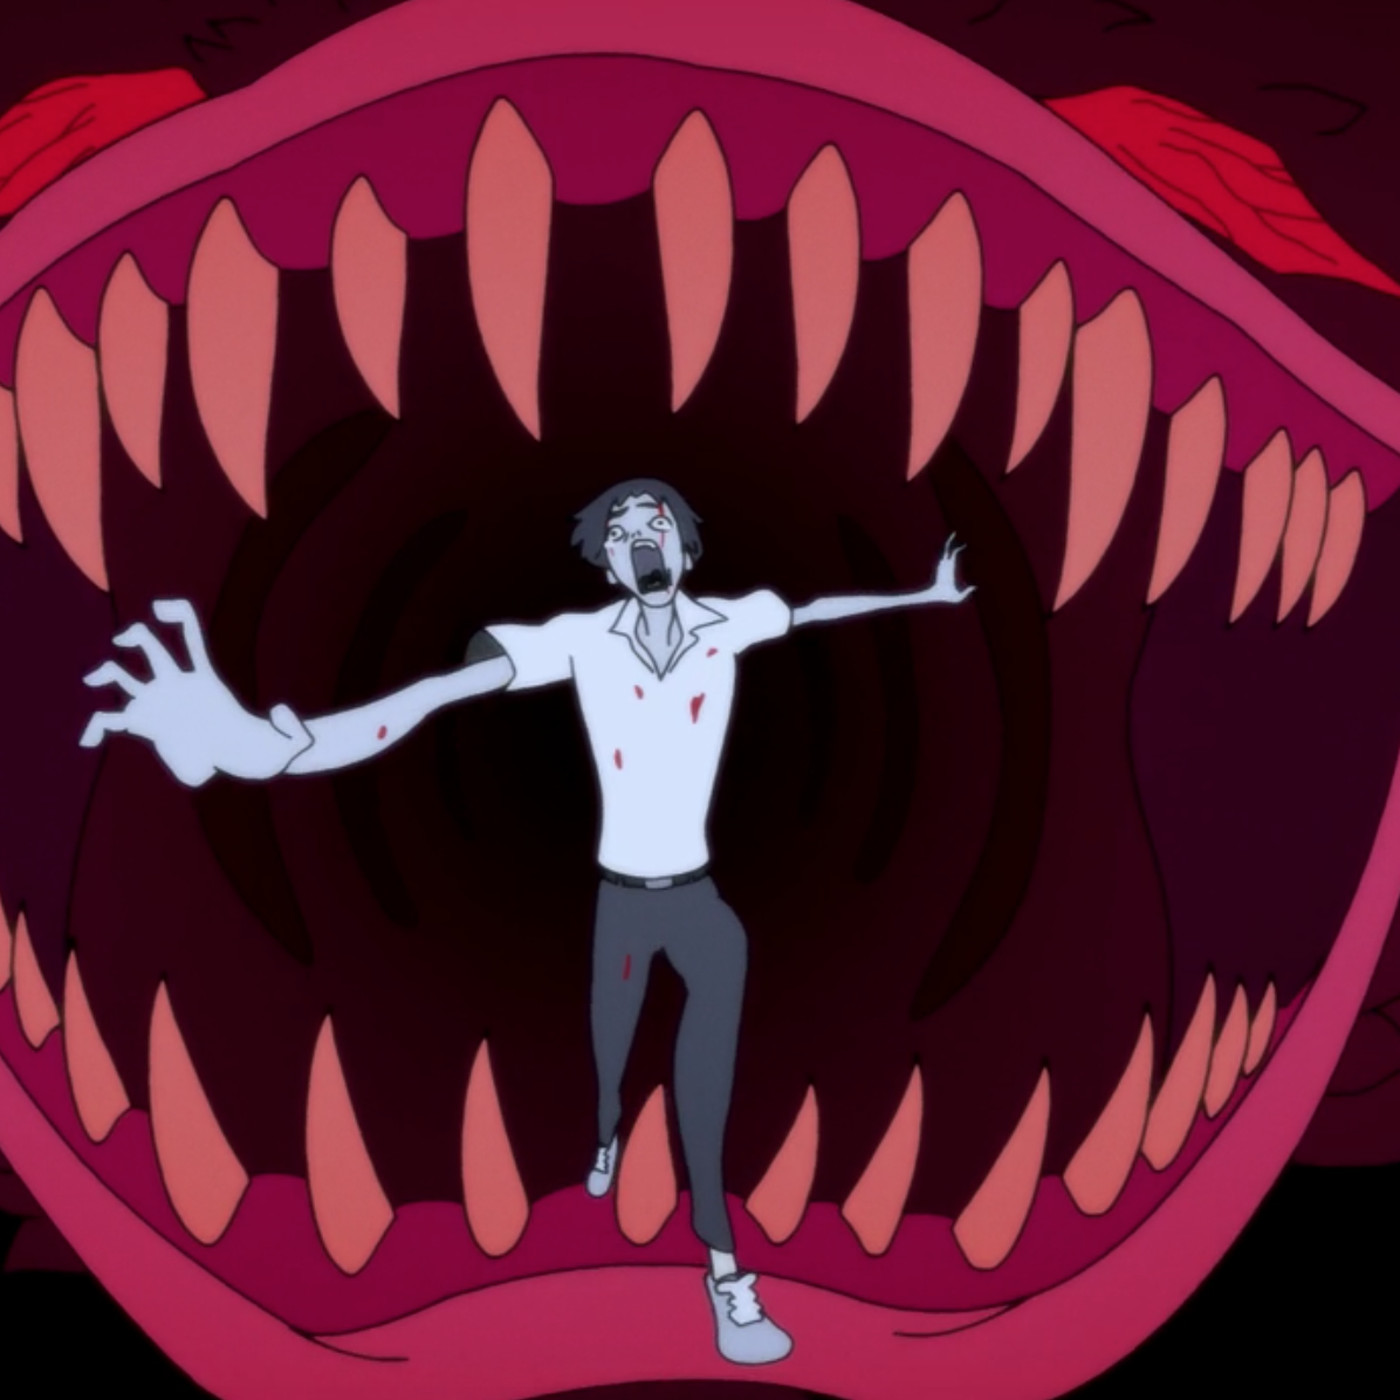 Devilman Crybaby Is Netflix S Horniest Most Shockingly Violent Show Yet The Verge